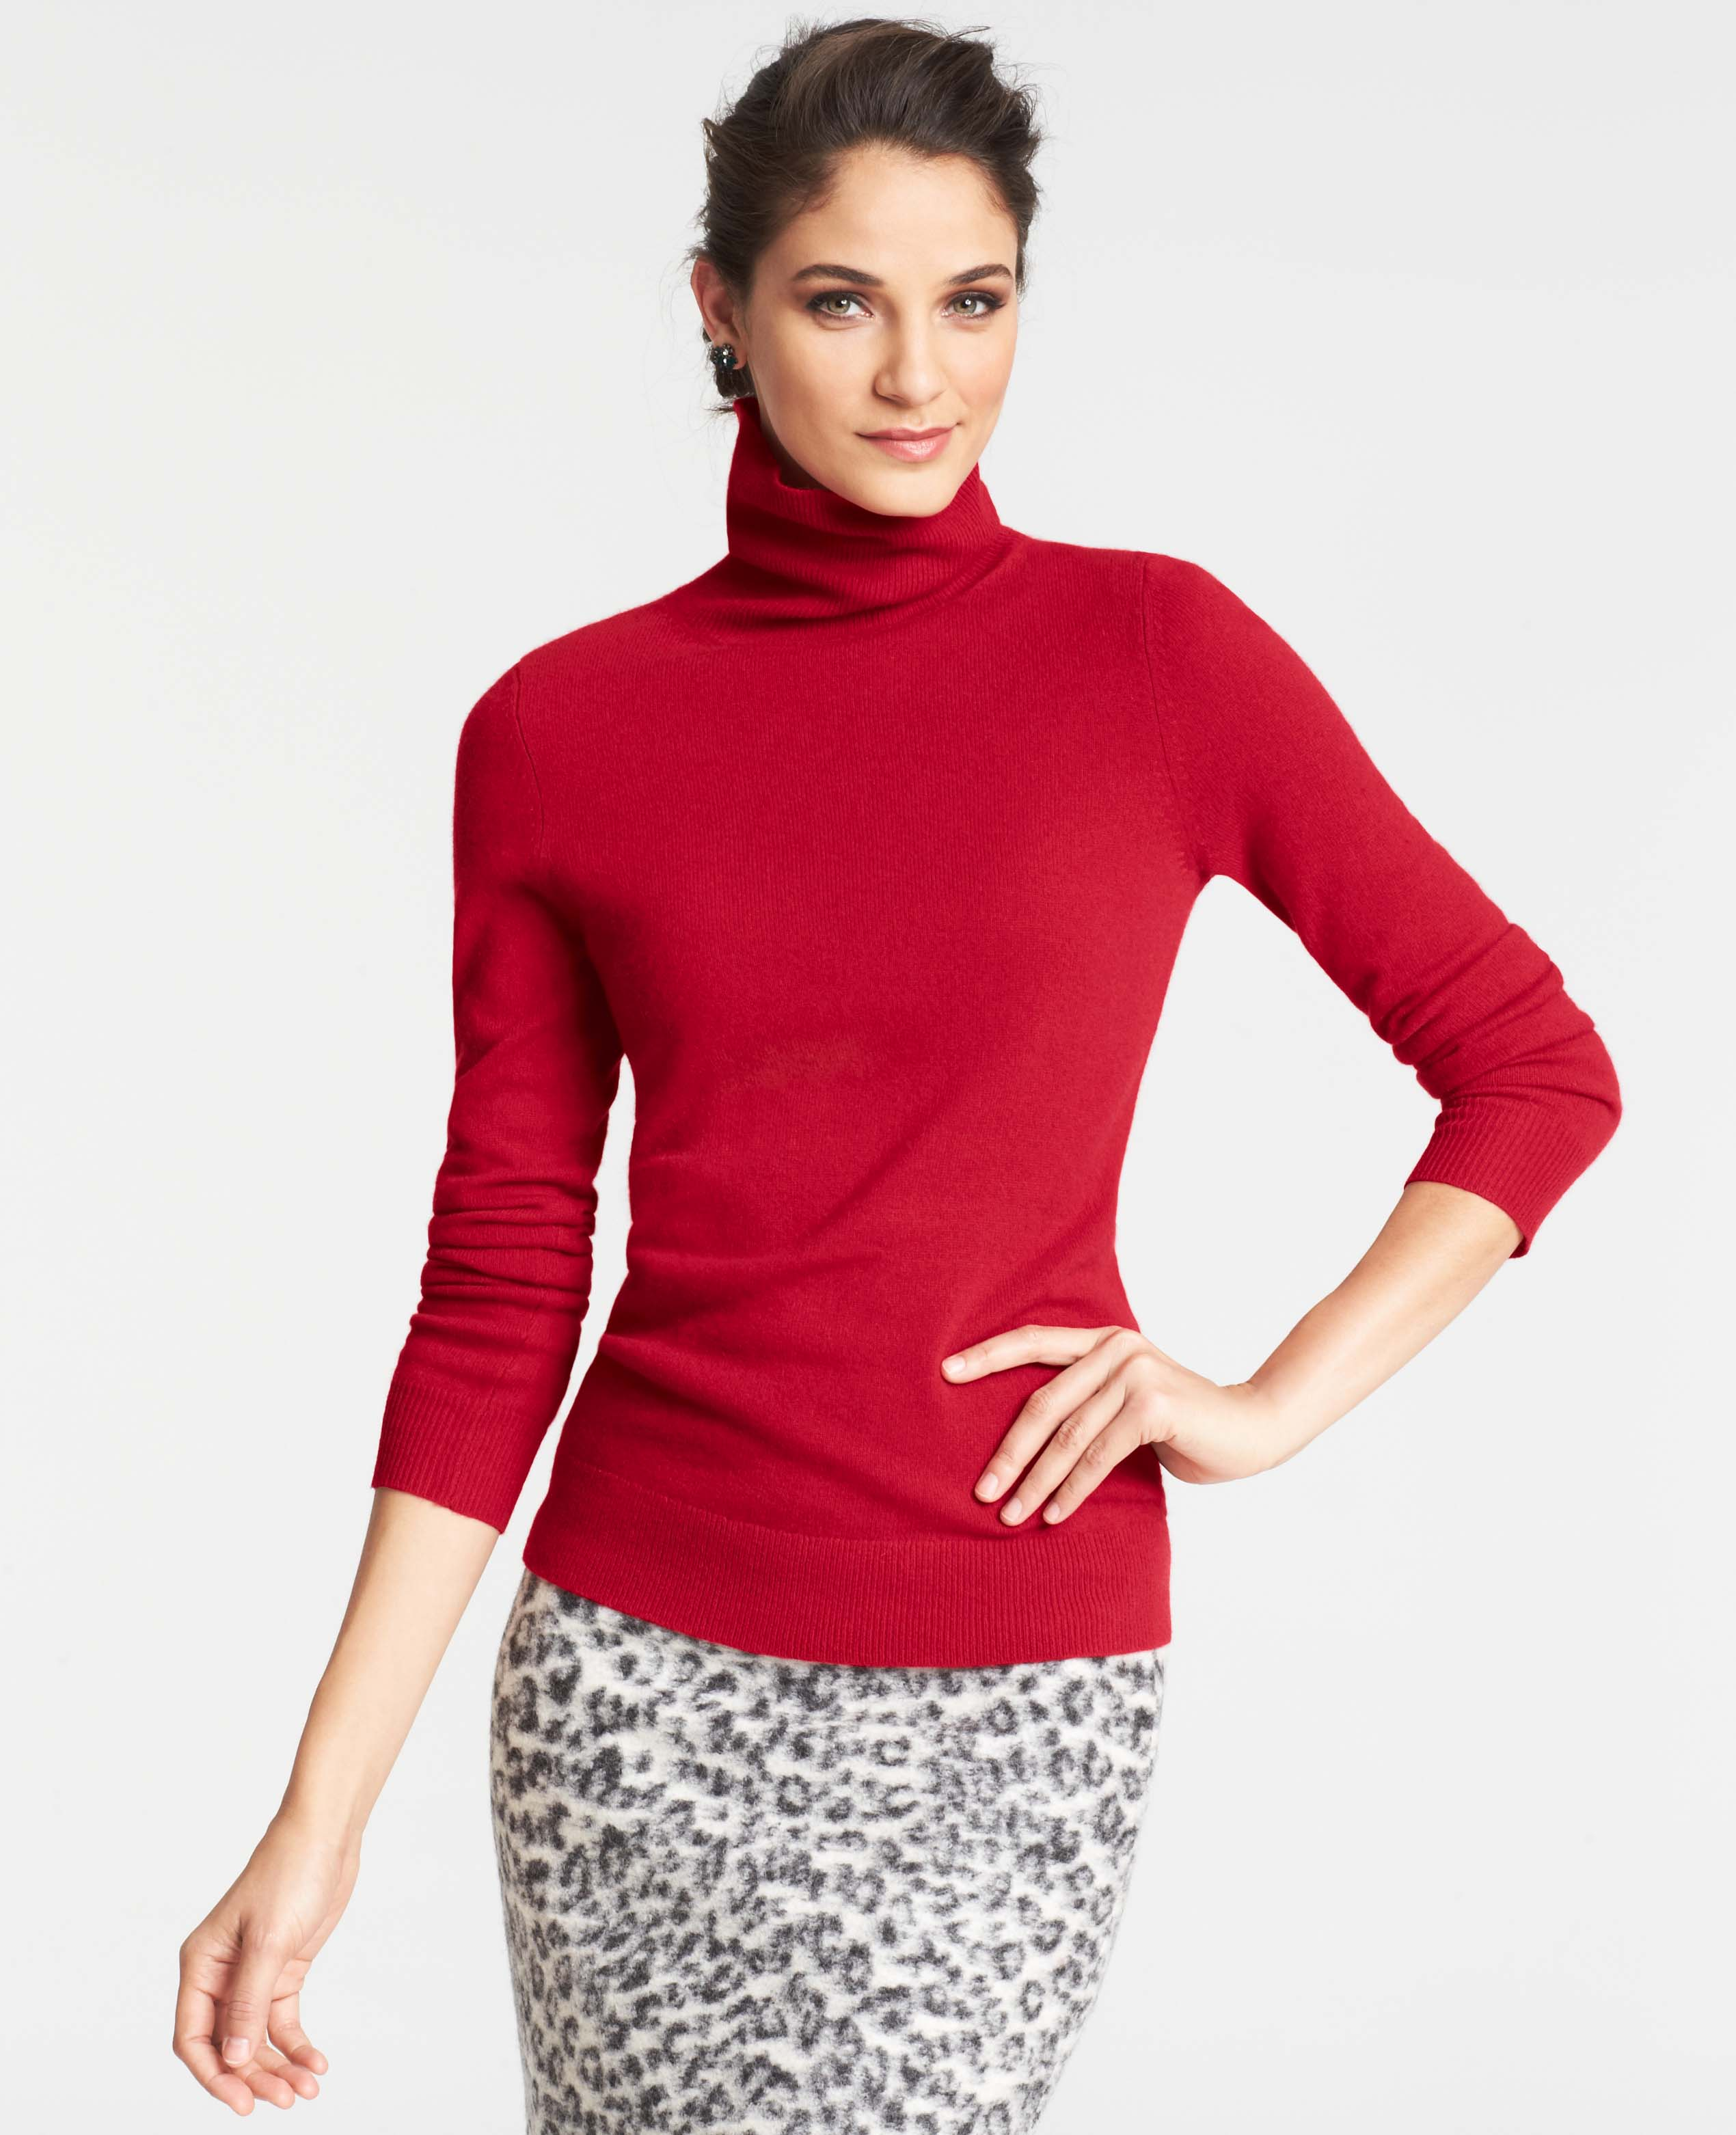 100  [ Red Turtleneck Sweater ] | Woman In Red Woolen Turtleneck ...